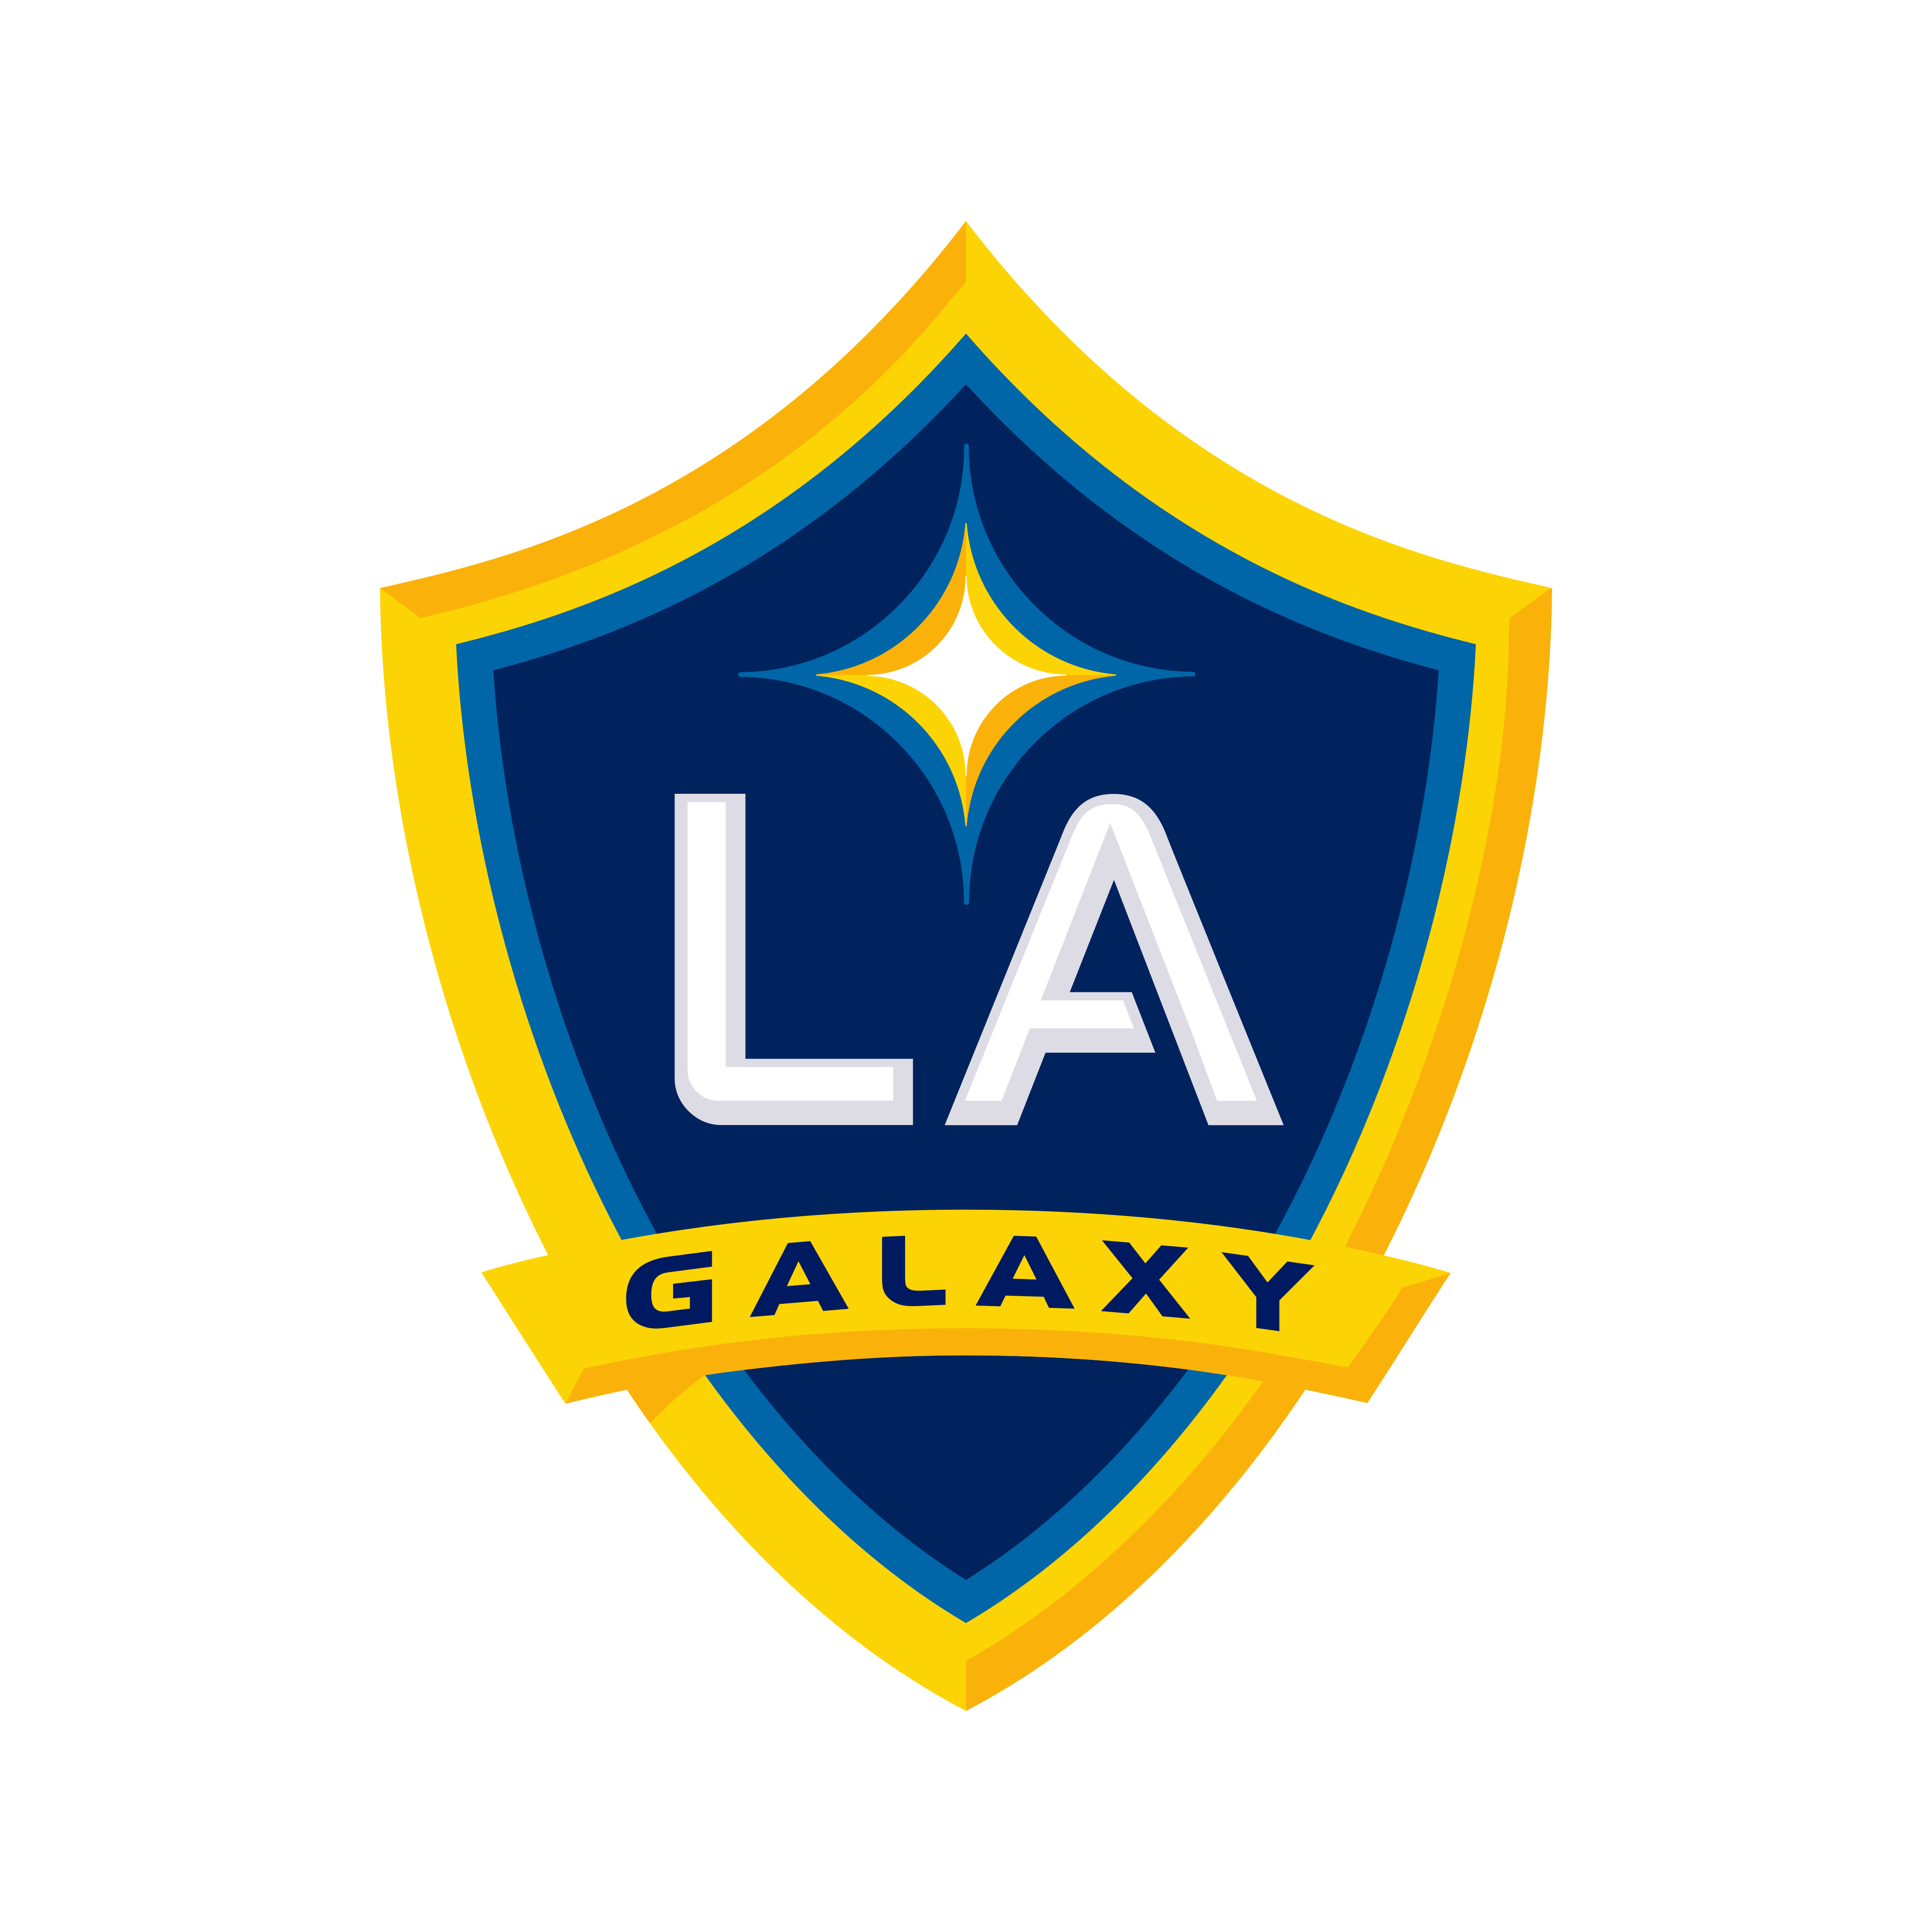 los angeles galaxy logo 0 - LA Galaxy Logo